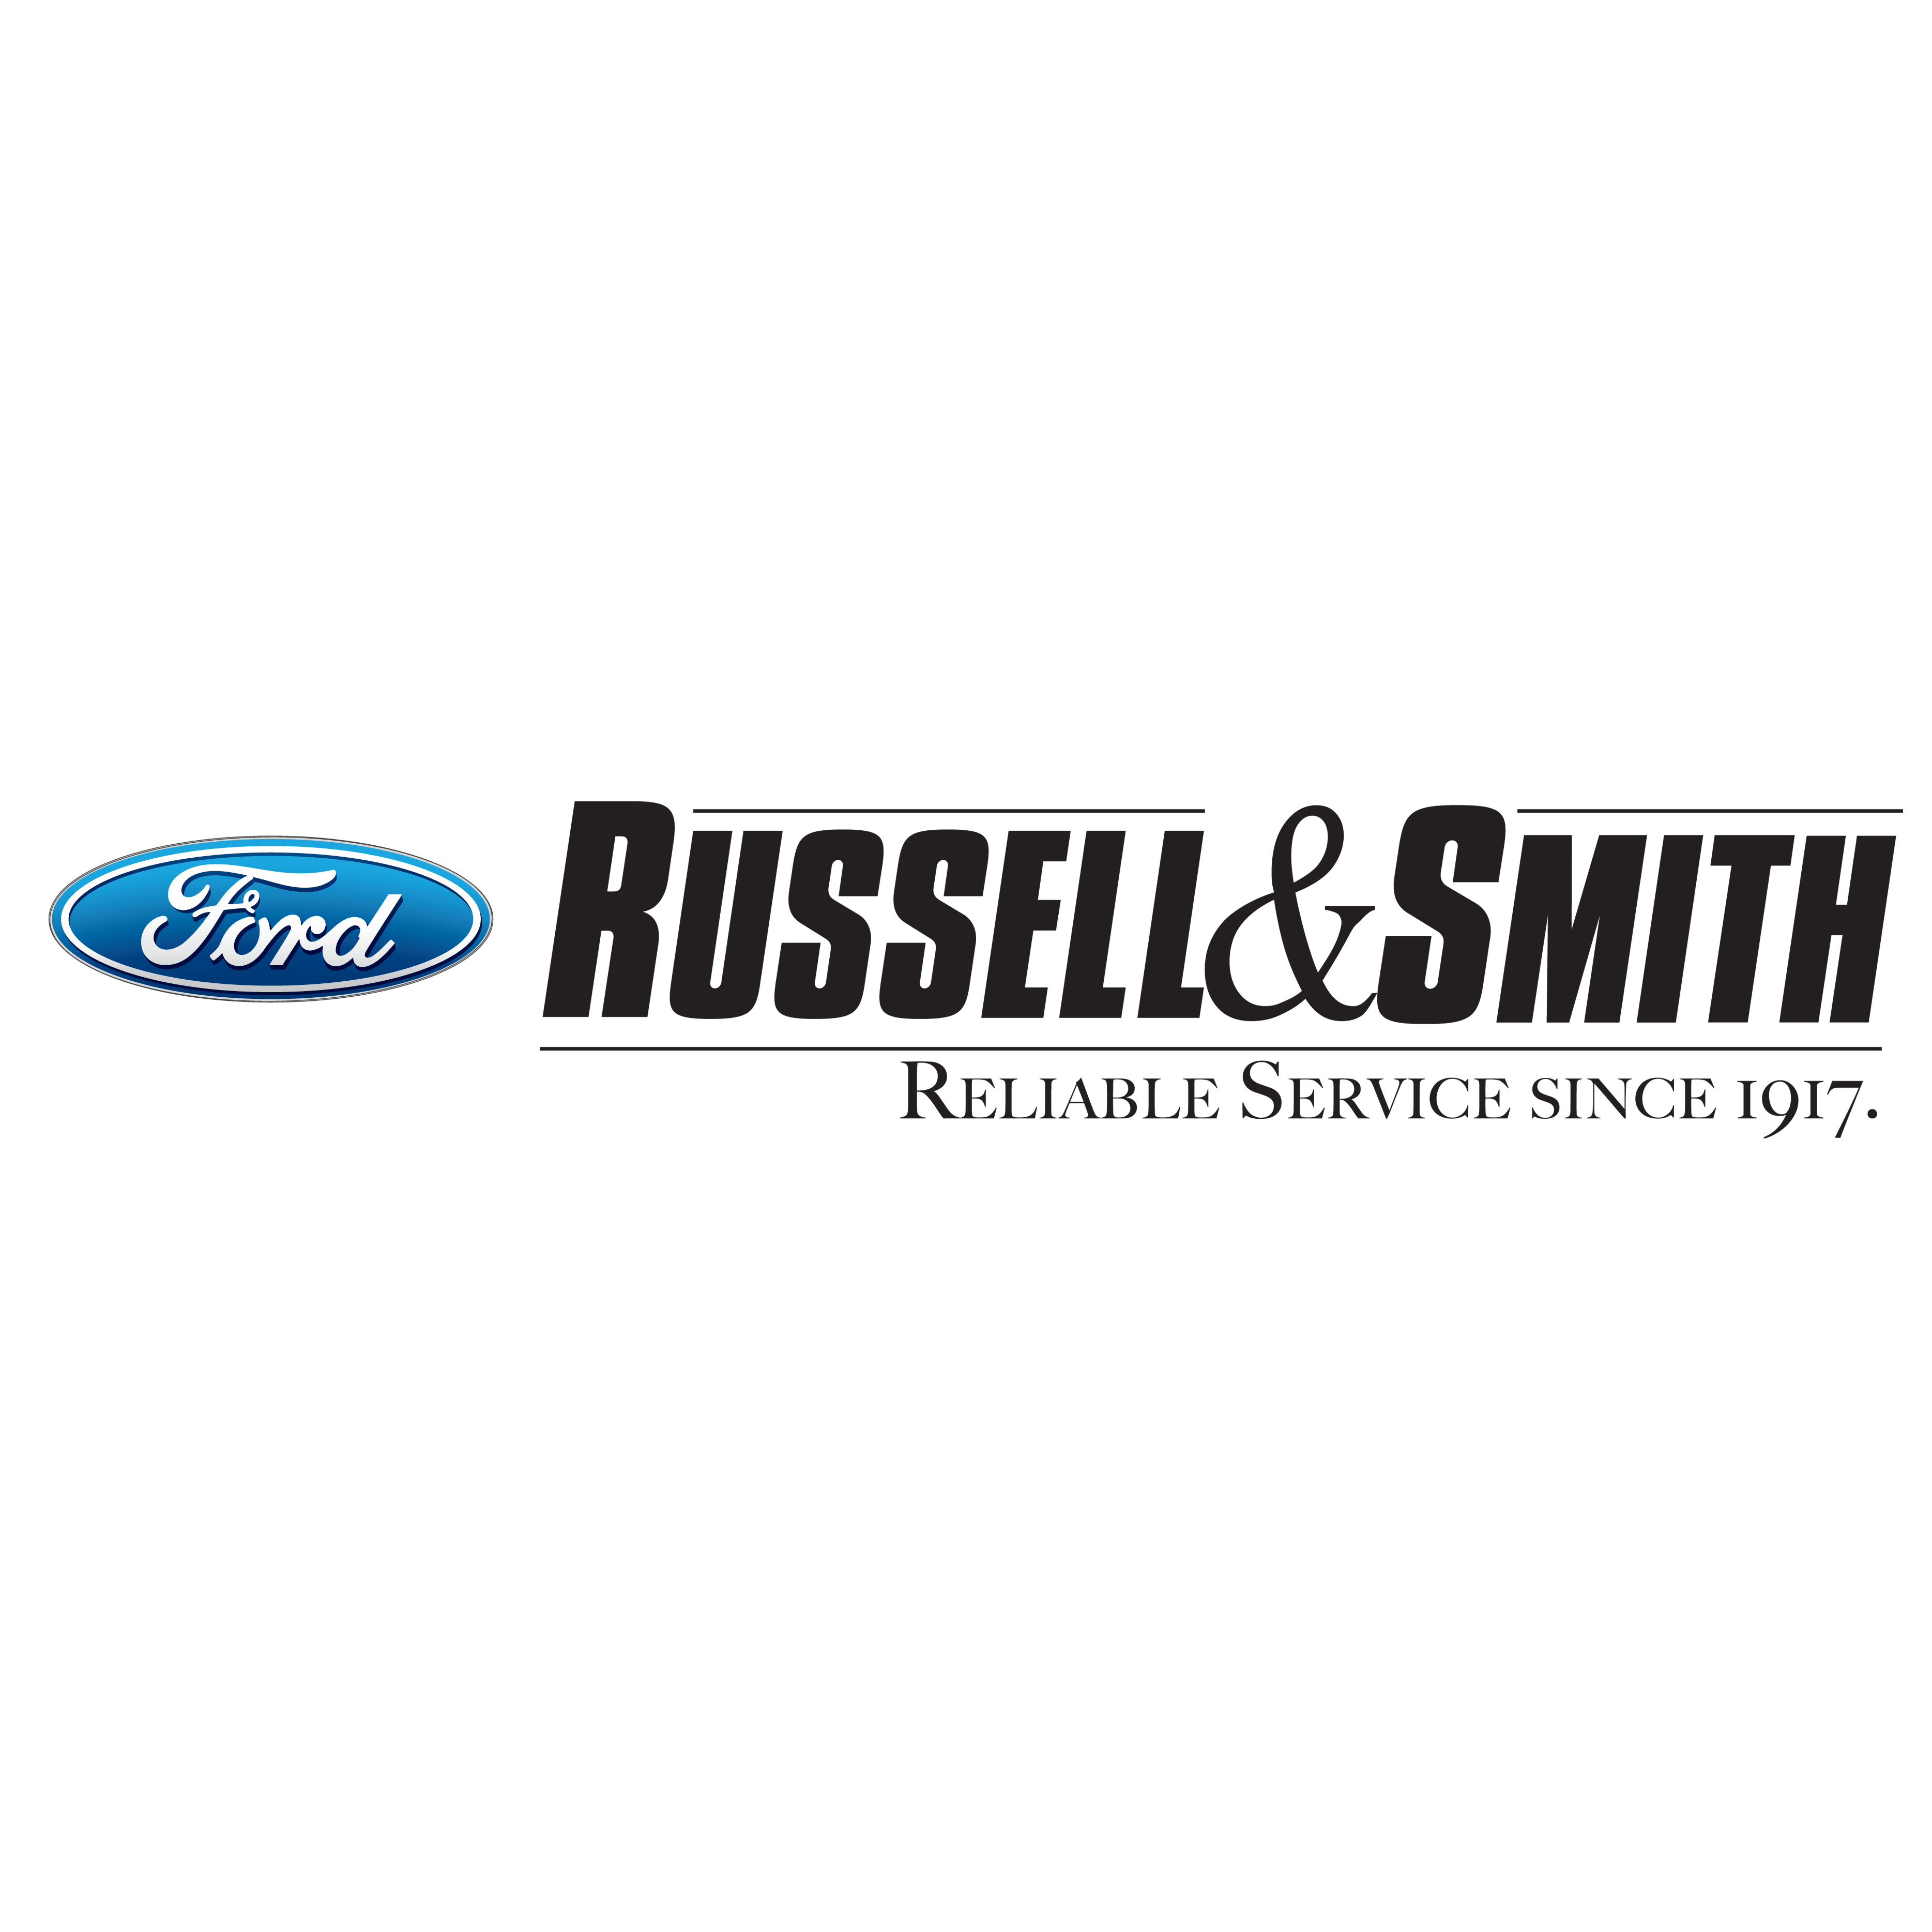 Russell & Smith Ford